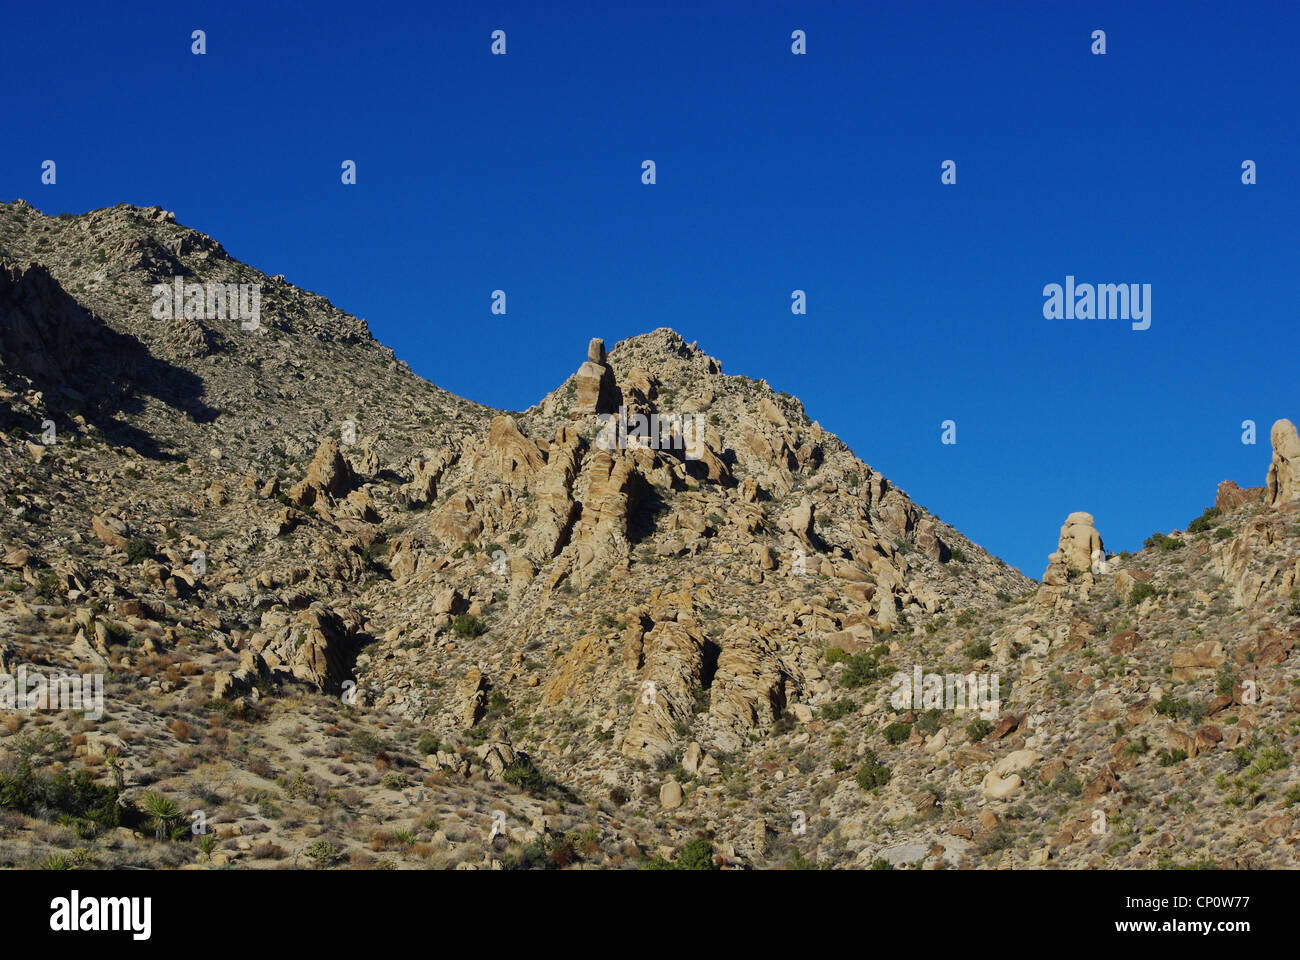 Interesting rock formations and blue sky, Nevada - Stock Image